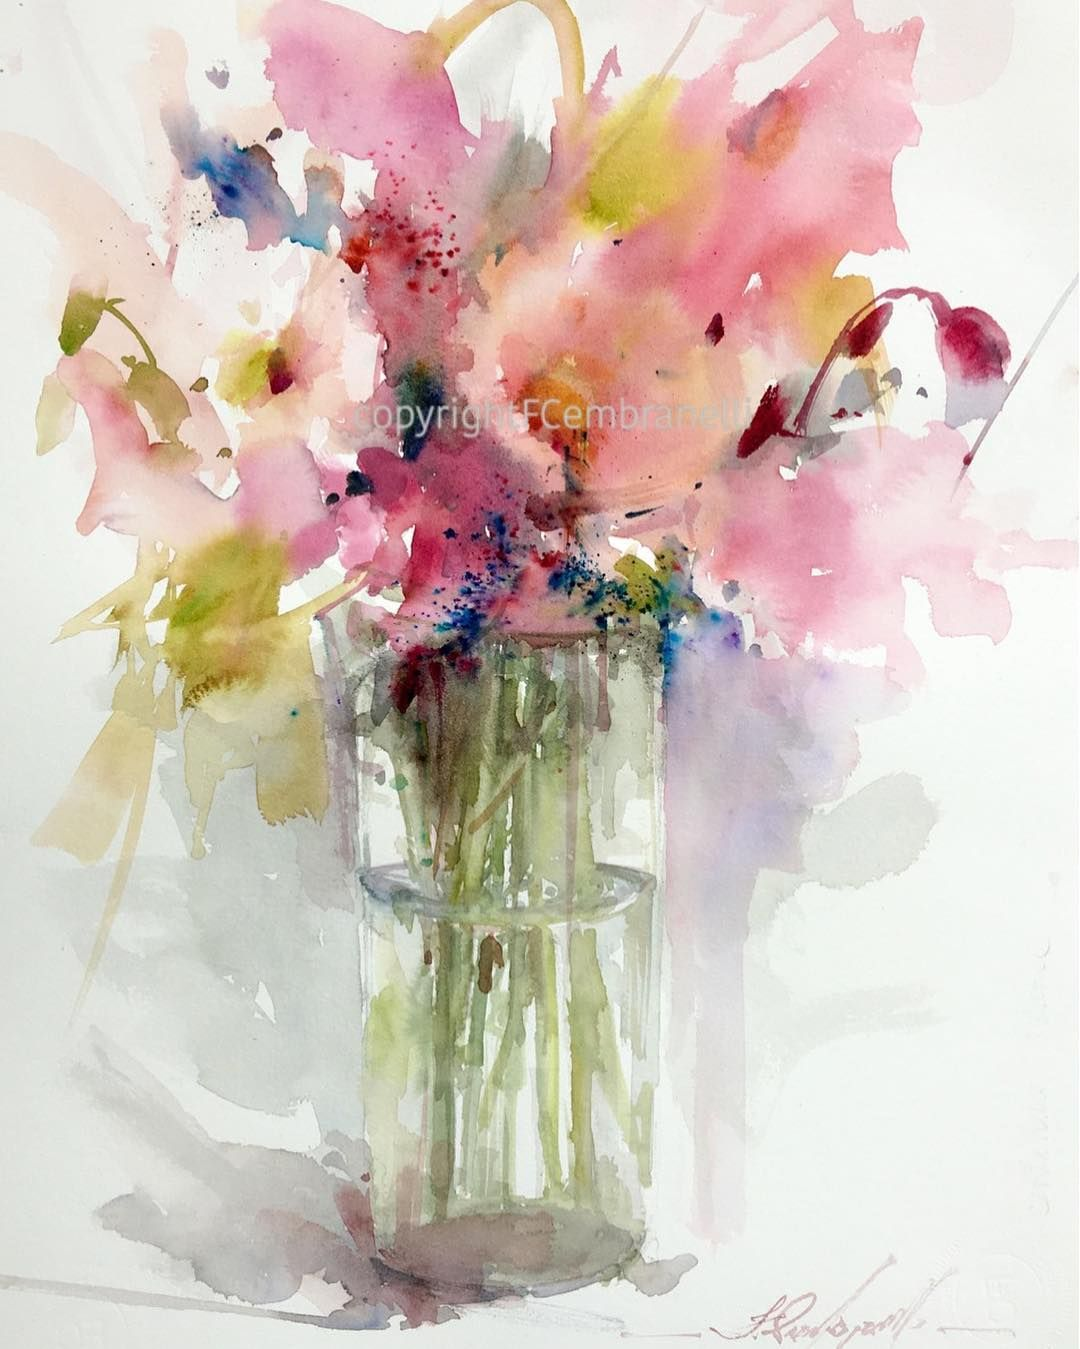 Watercolor Flowers Paintings Image By Anne Sheaffer On Free